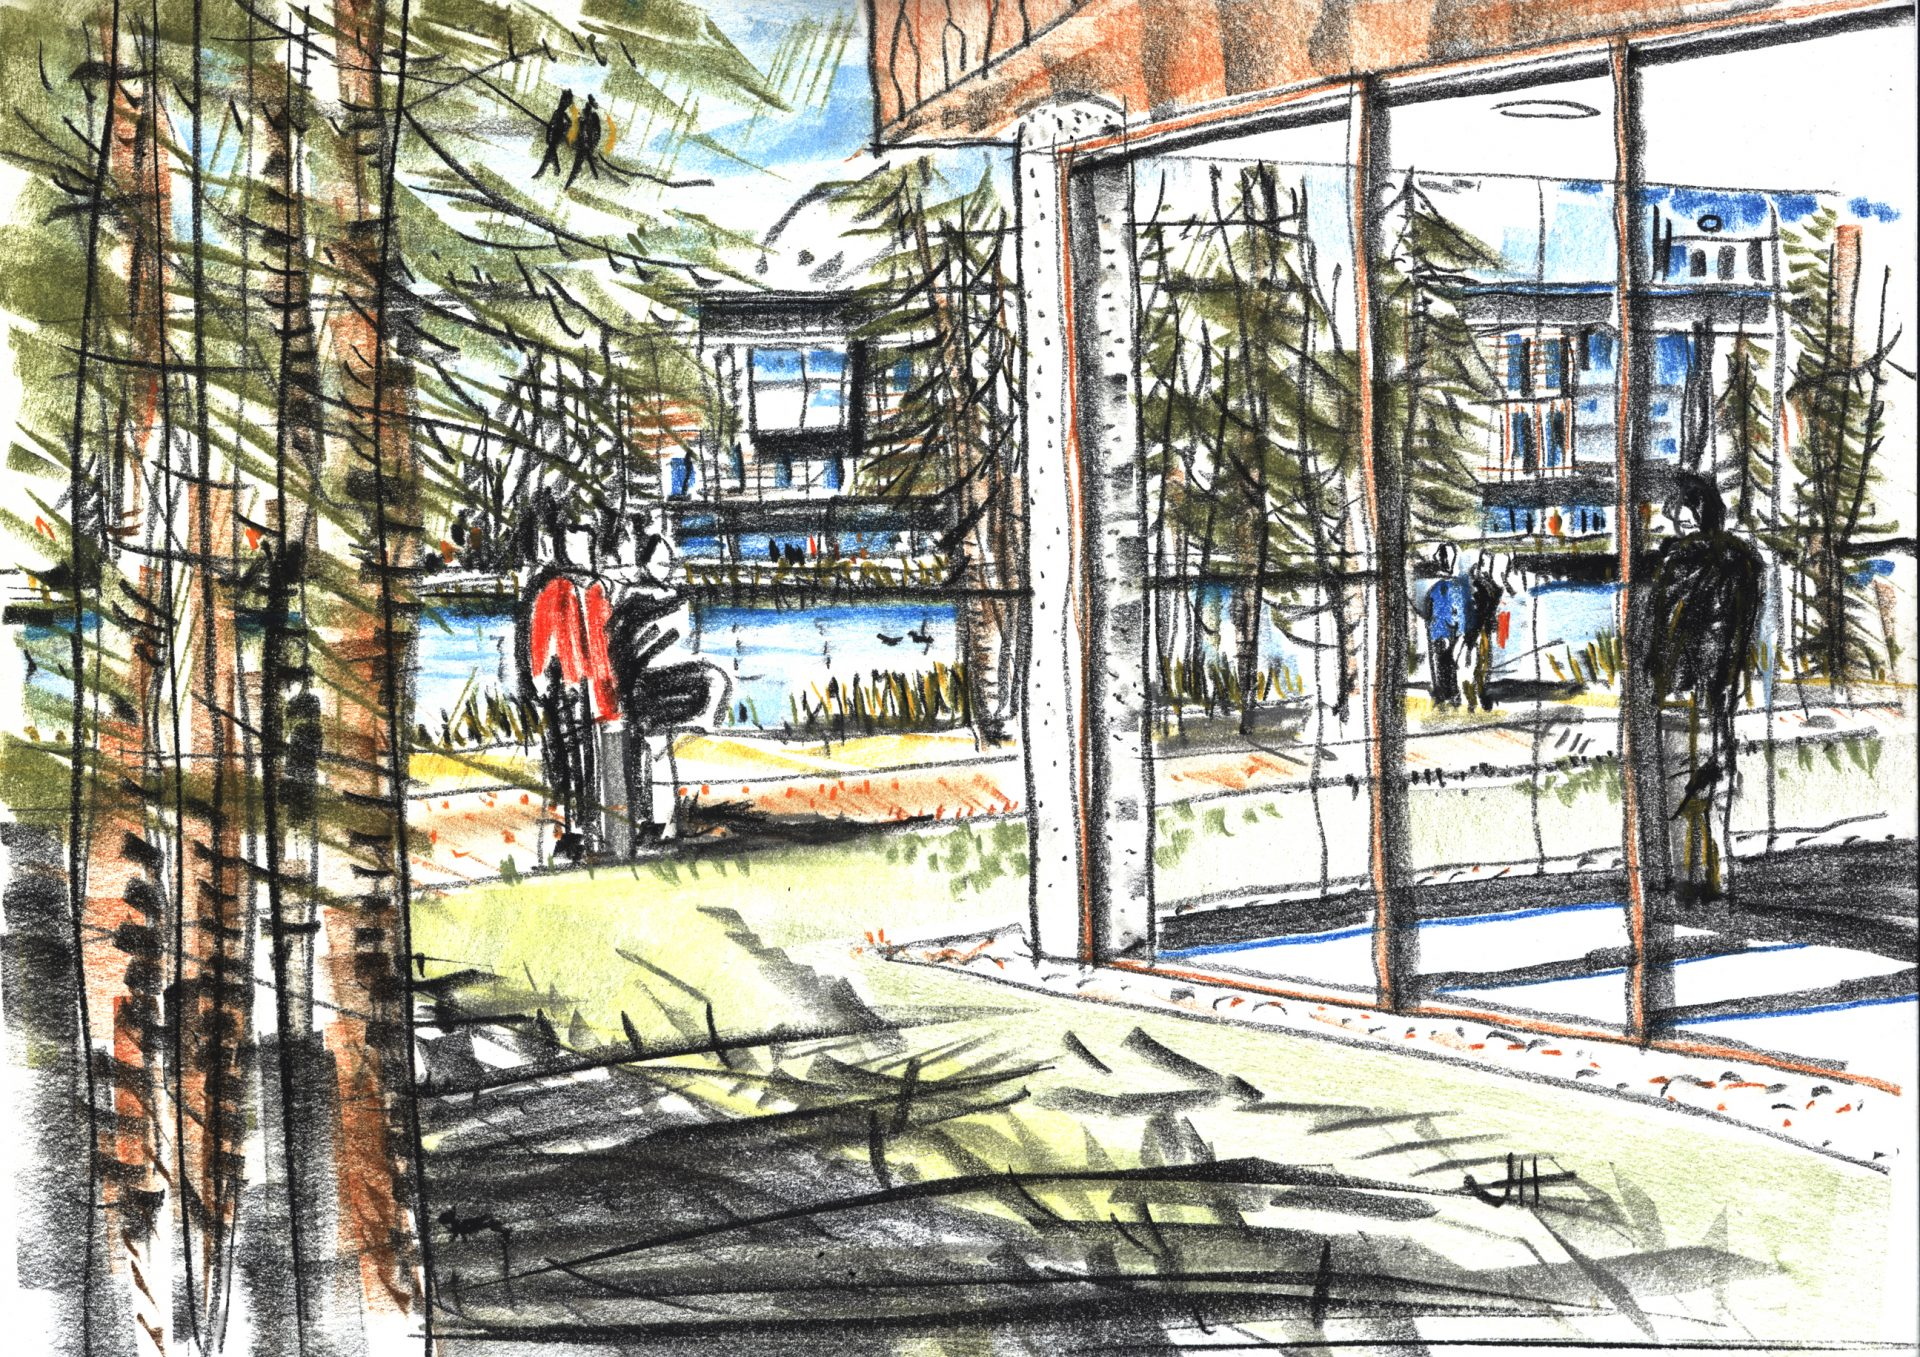 Latvia East Jurmala Sketch Artists Impression